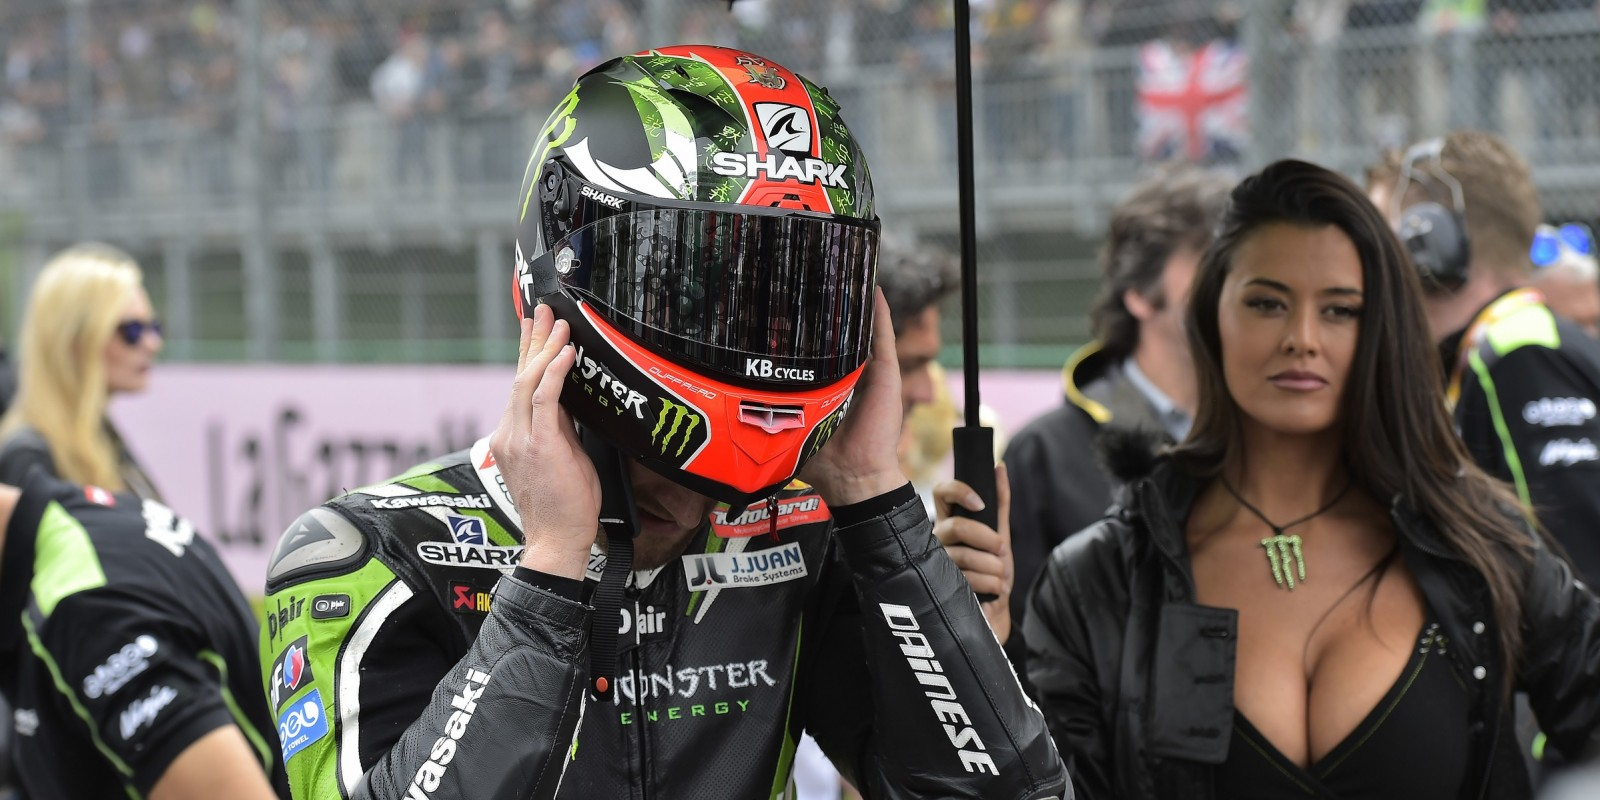 Tom Sykes in action and on the grid at the fifth round of the WorldSBK championship at Imola